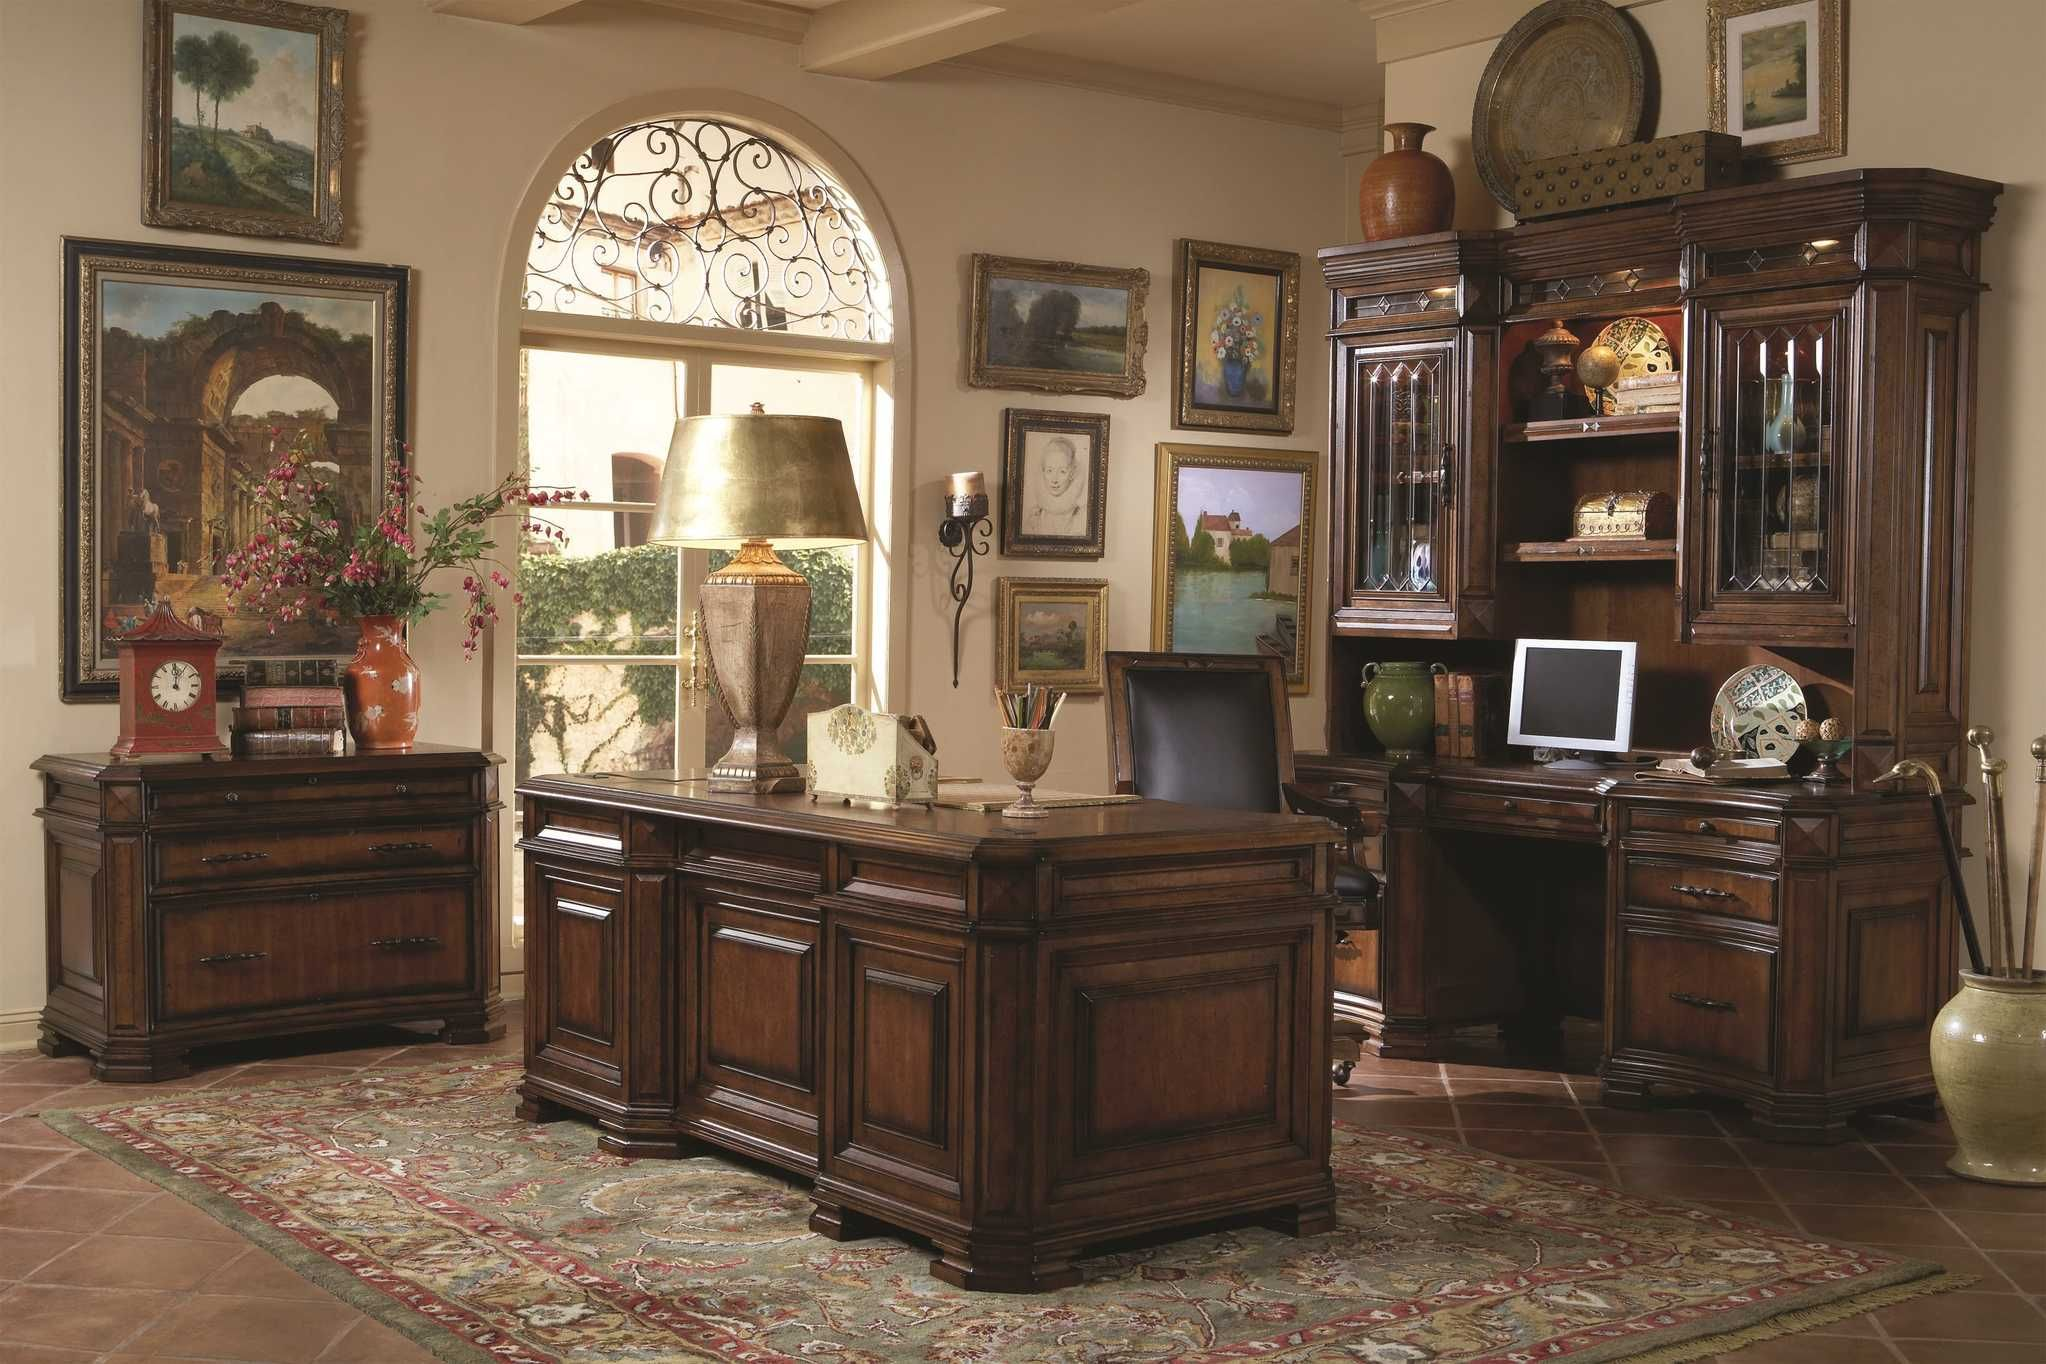 3350executive home office furniture in light cherry